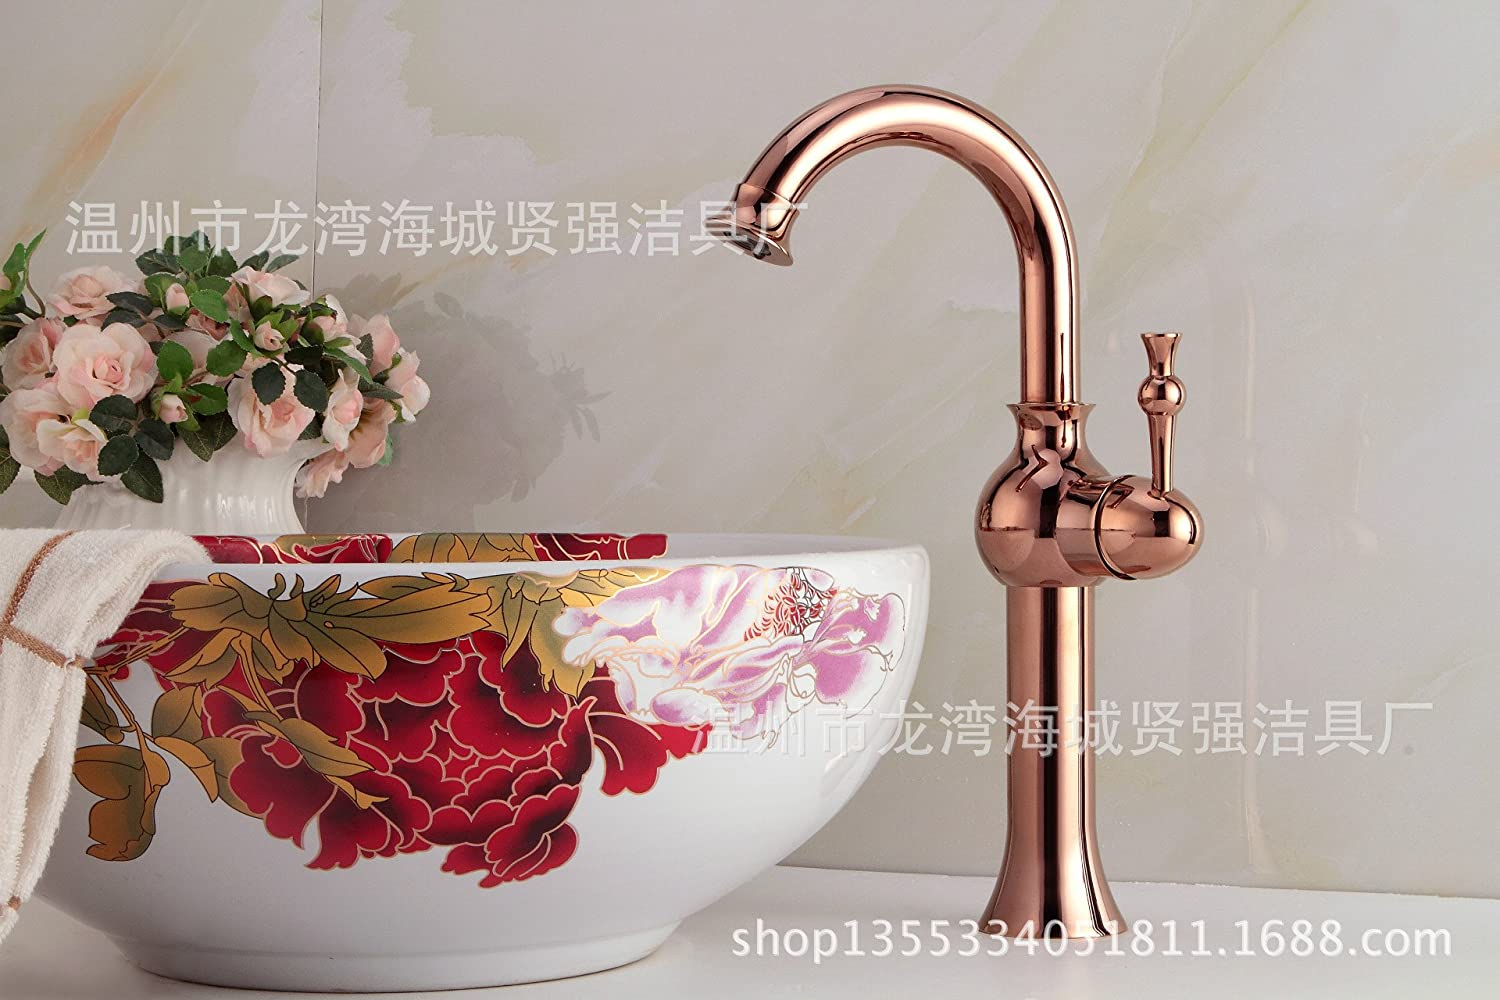 JIAHENGY Sink Mixer Faucet tap American creative modern minimalist fashion Retro Antique Solid Brass Two Holes Double Handles Wall Mounted with Swivel Spout,oil Rubbed Bronze Finish Toilet Kitchen bathroom